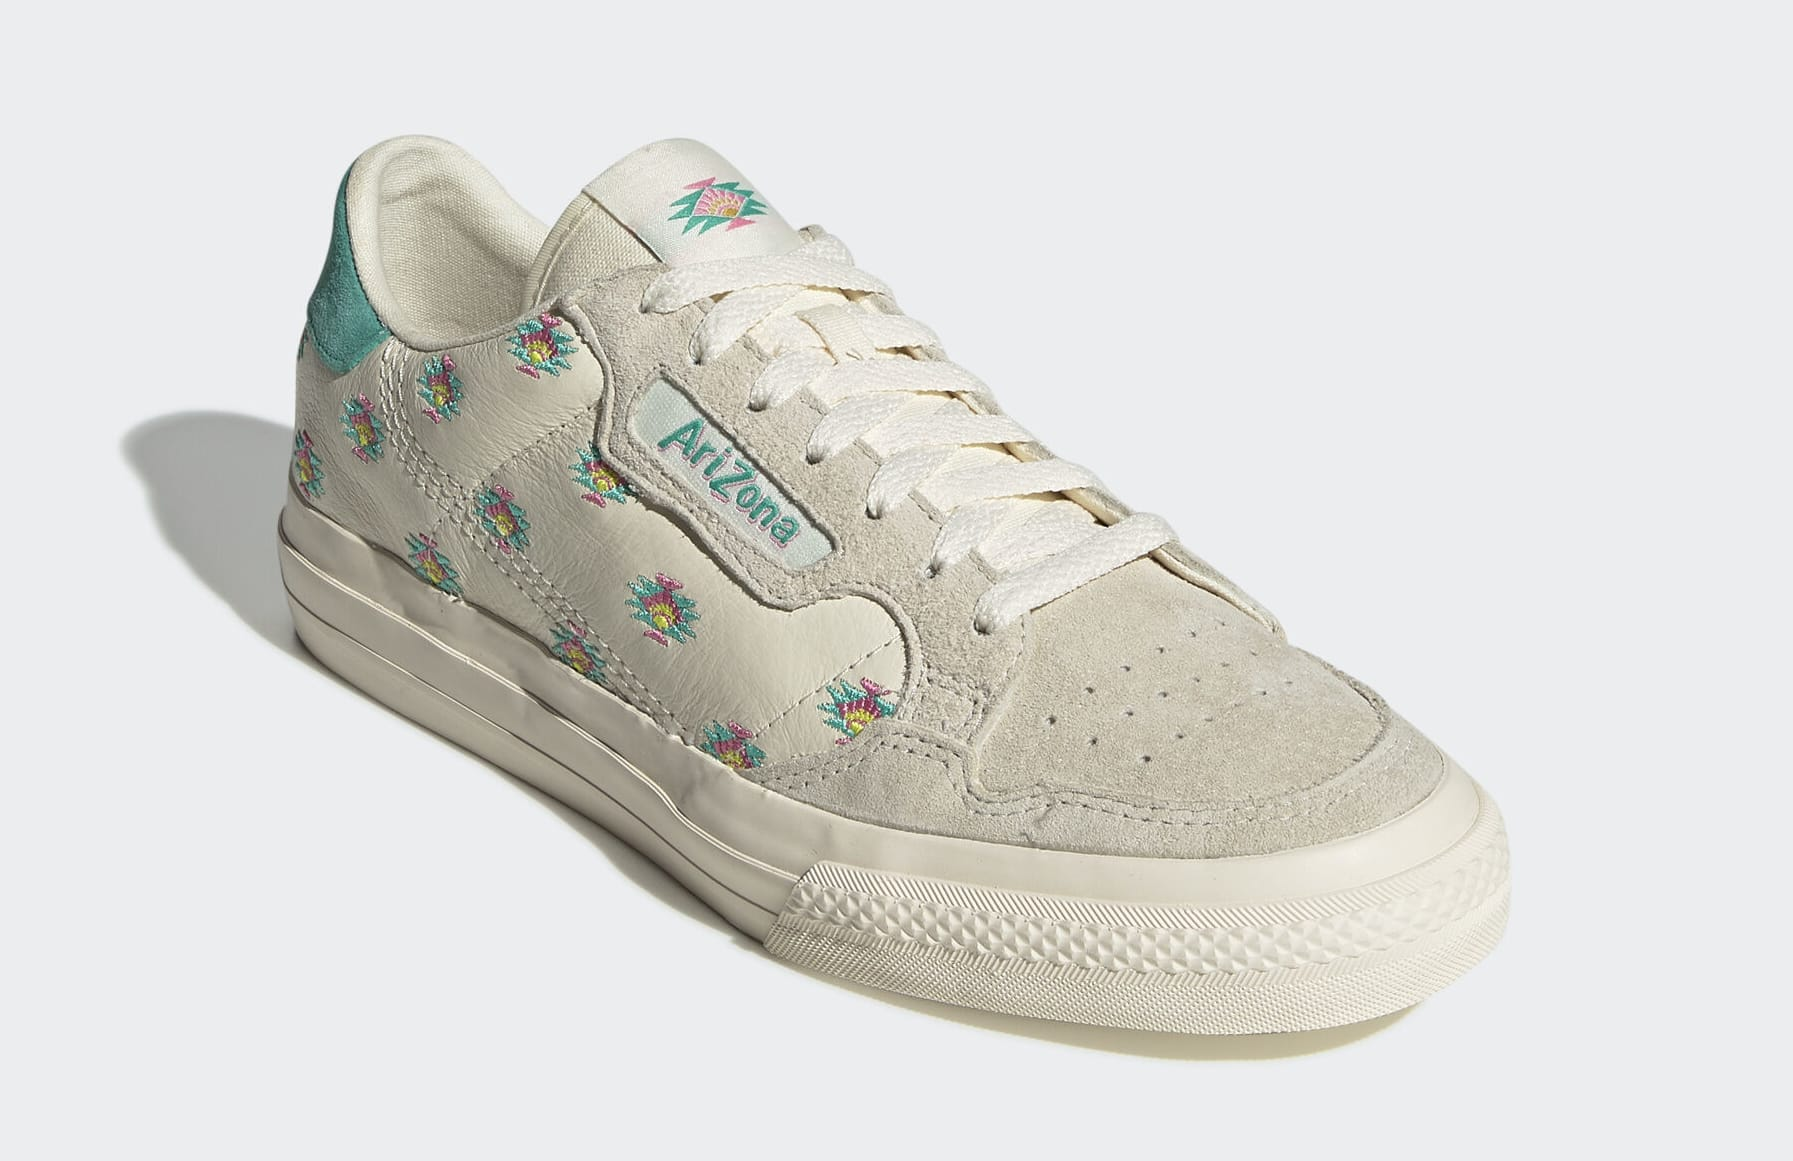 arizona-ice-tea-adidas-continental-80-vulc-fv2714-toe